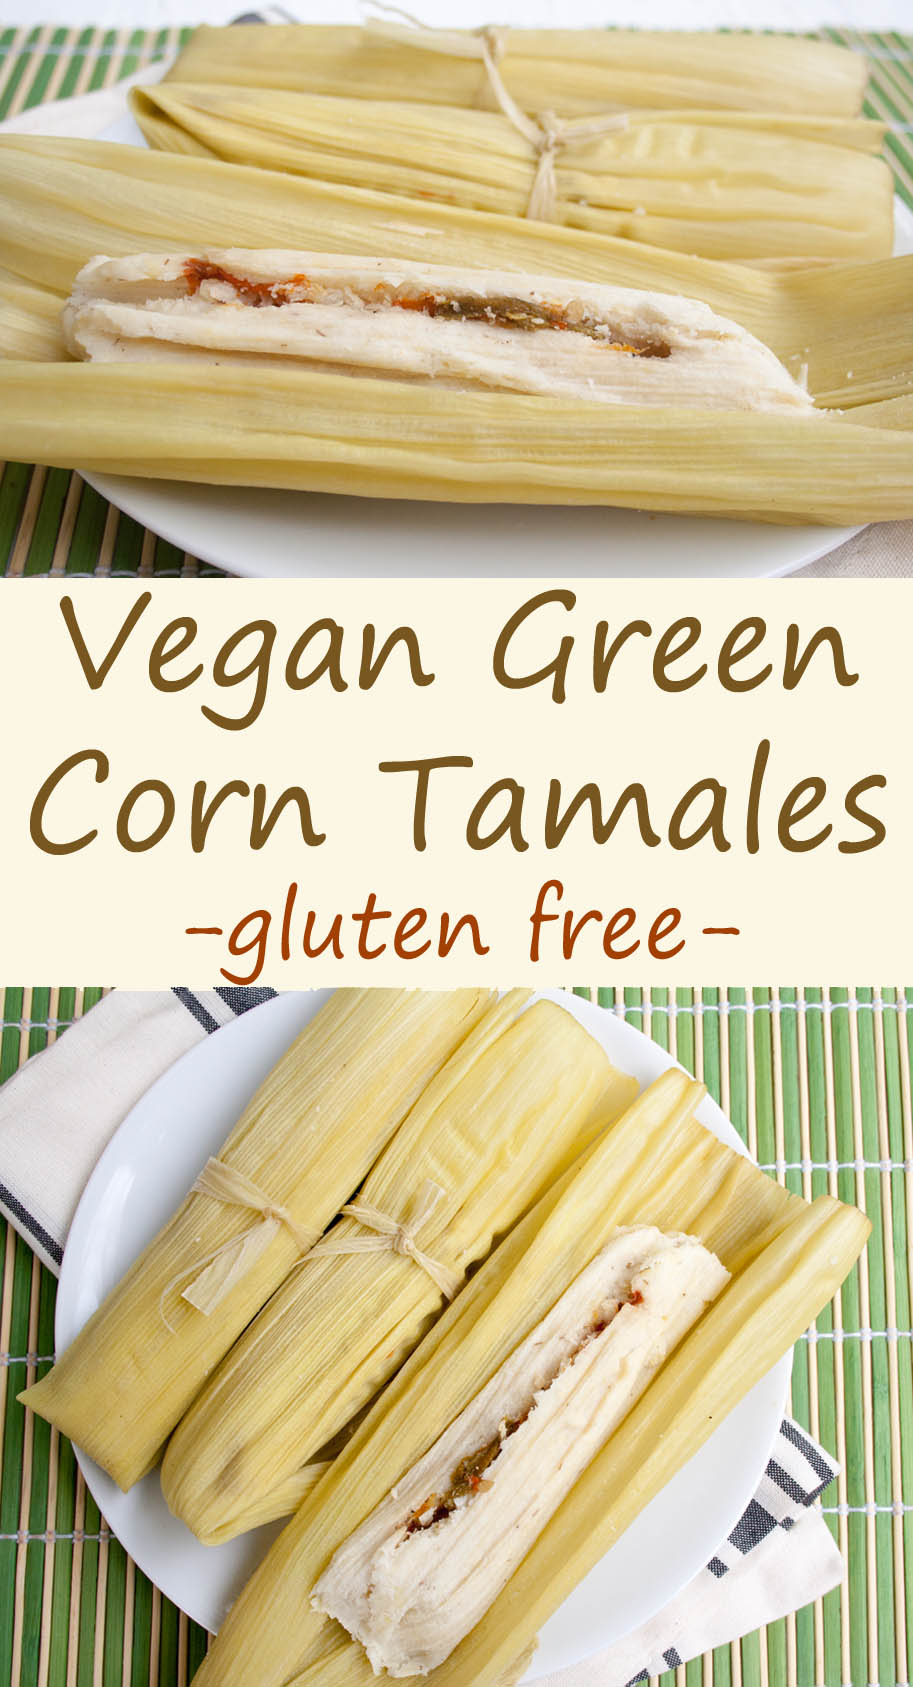 Corn Tamales collage photo with text.